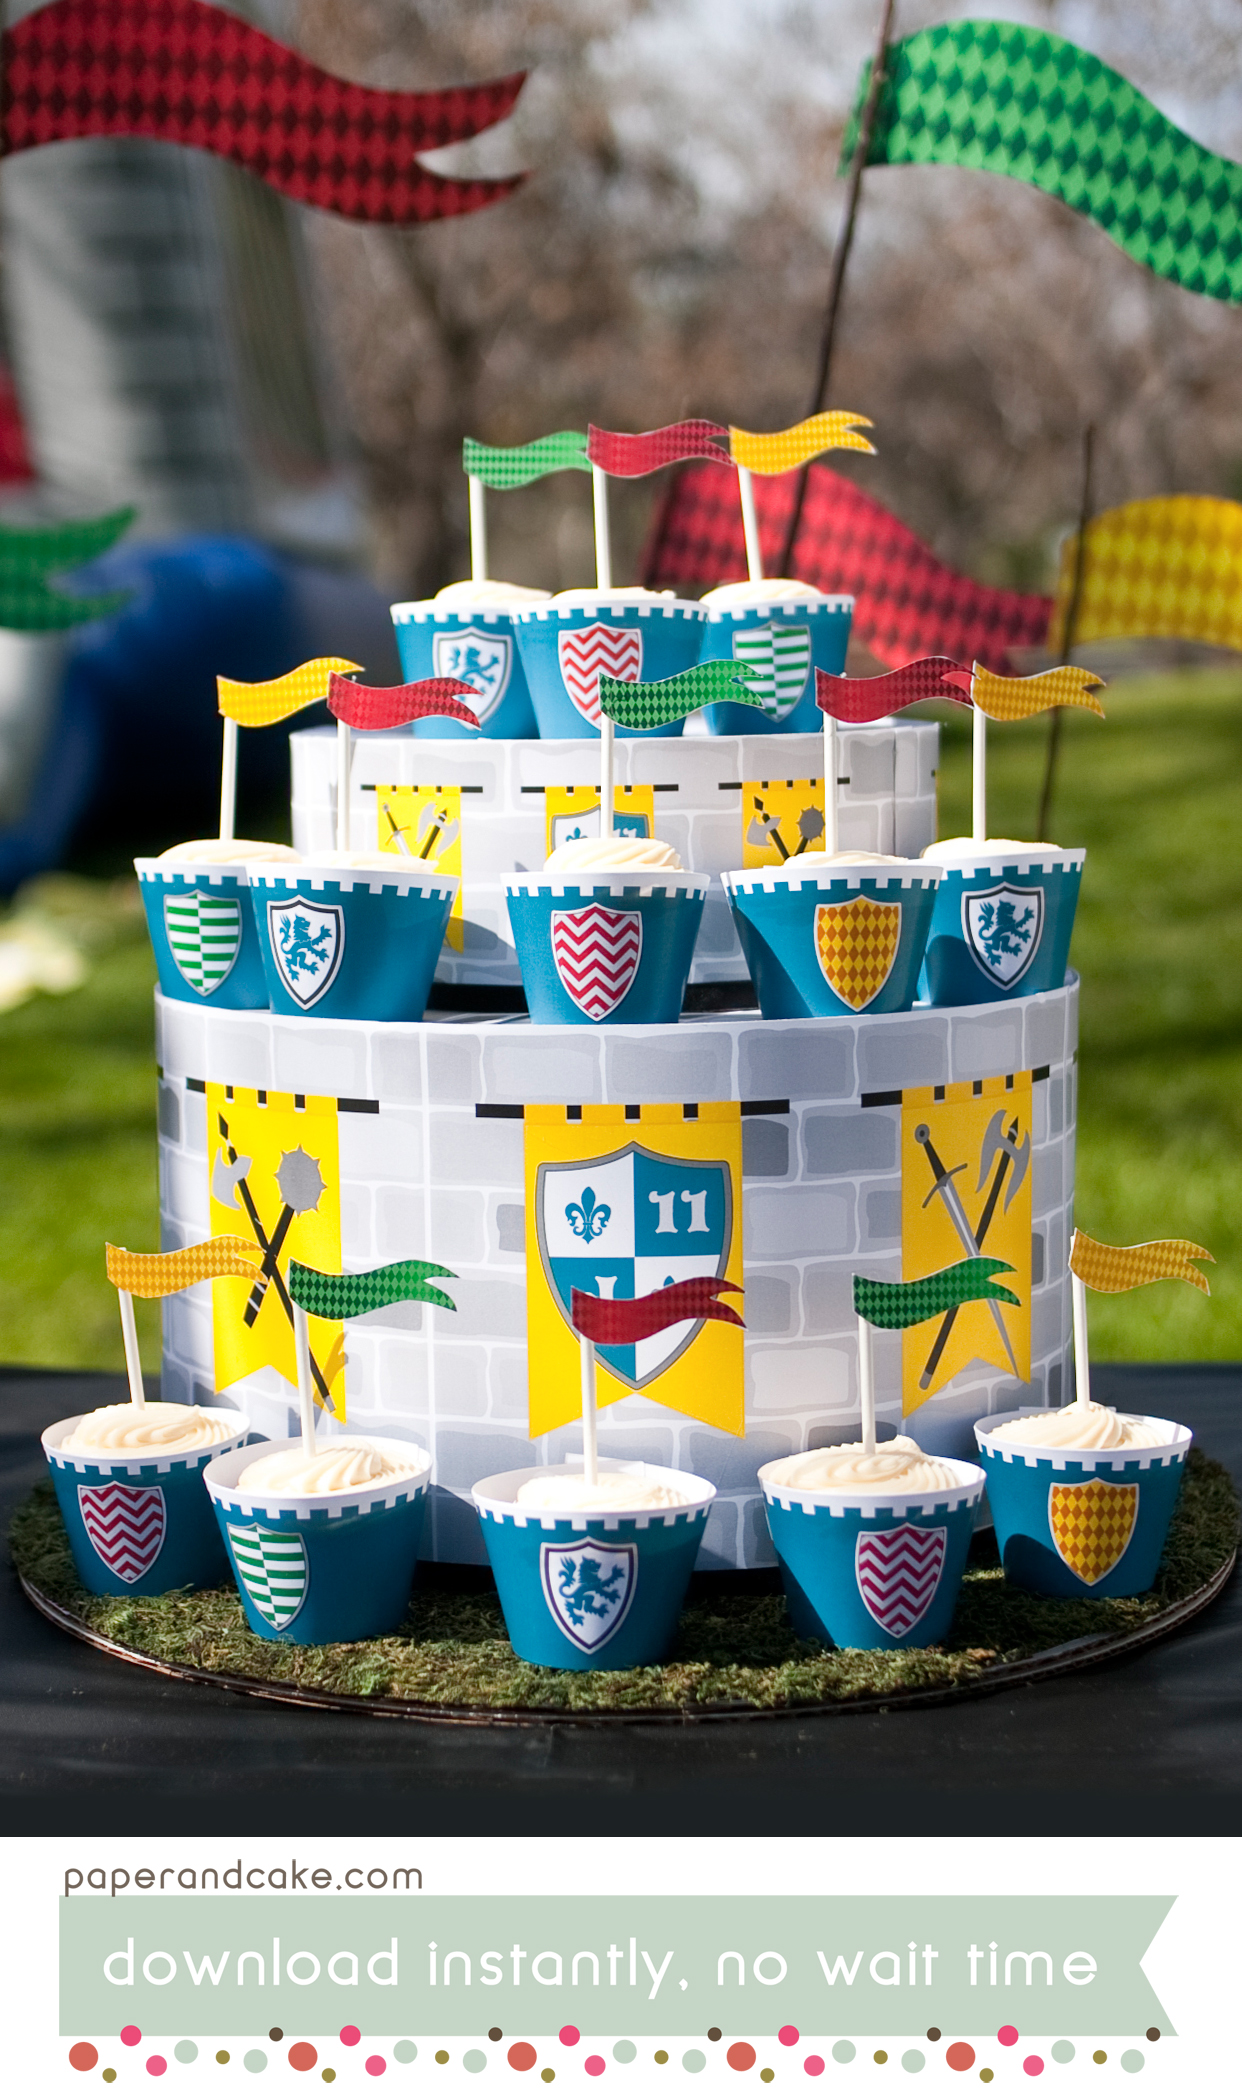 Marvelous Medieval Knights Castle Printable Birthday Party Paper And Cake Funny Birthday Cards Online Overcheapnameinfo